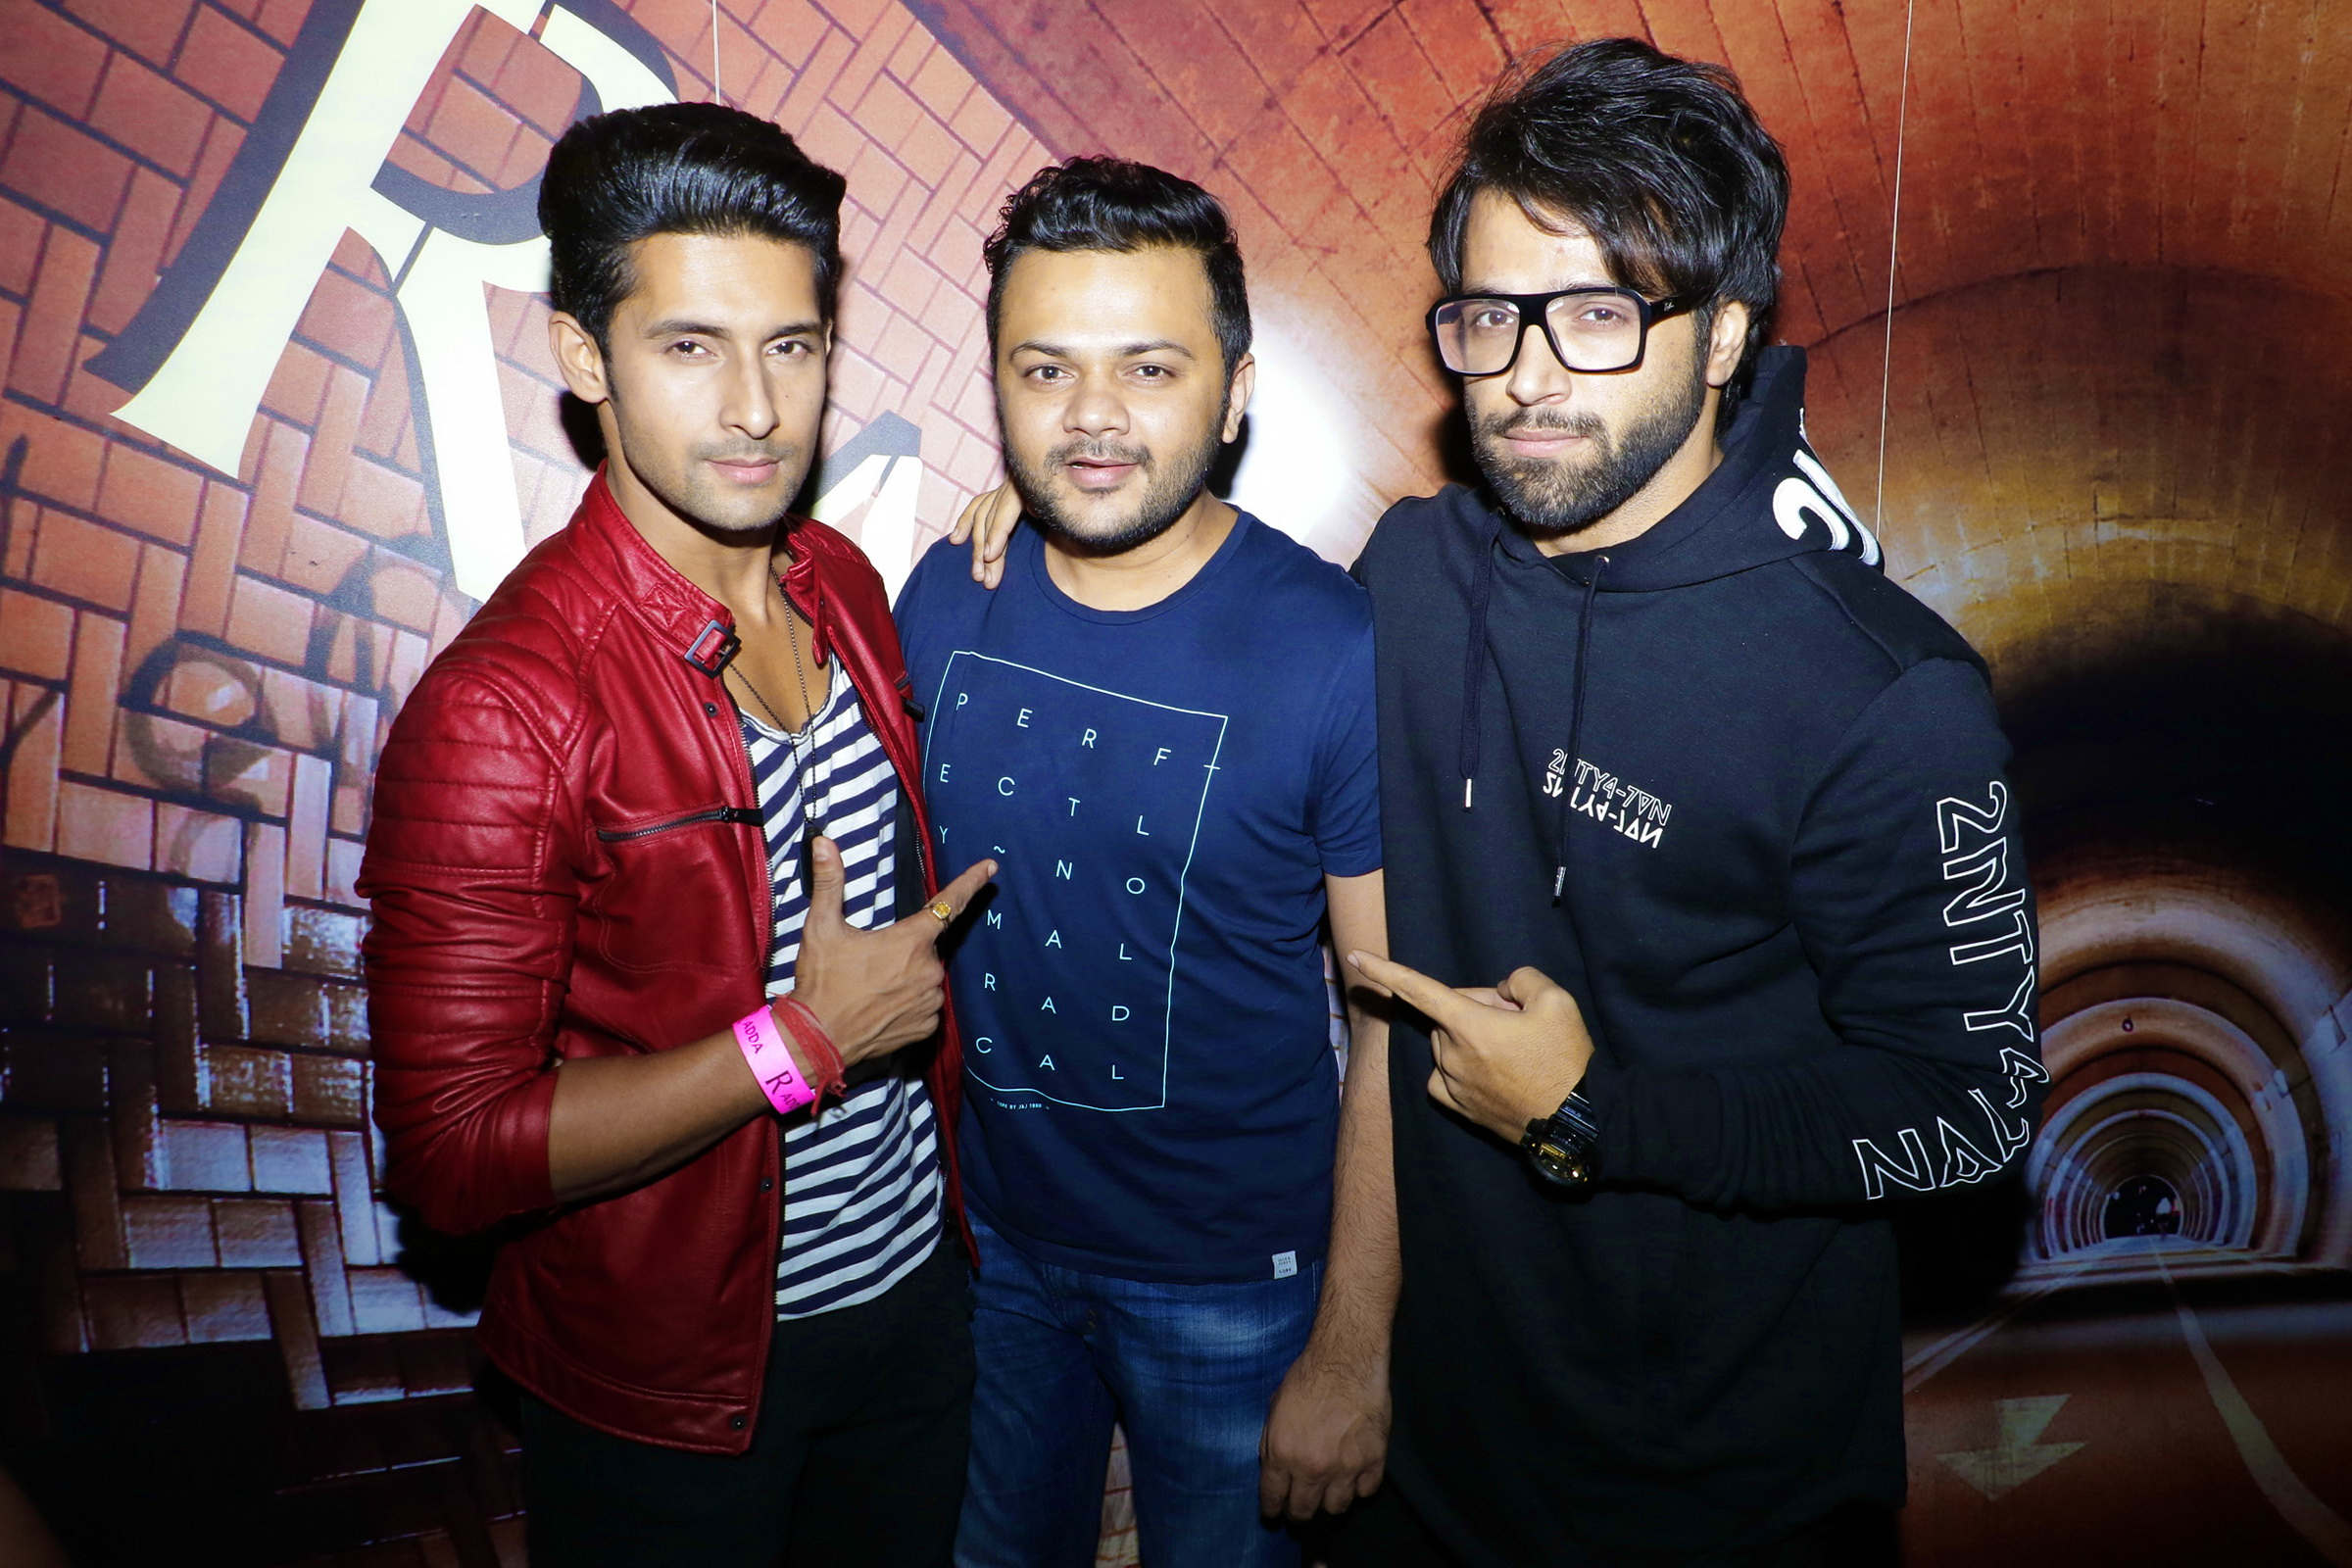 Fashion & Models Night at R-Adda -Roof Top Hideout Bar